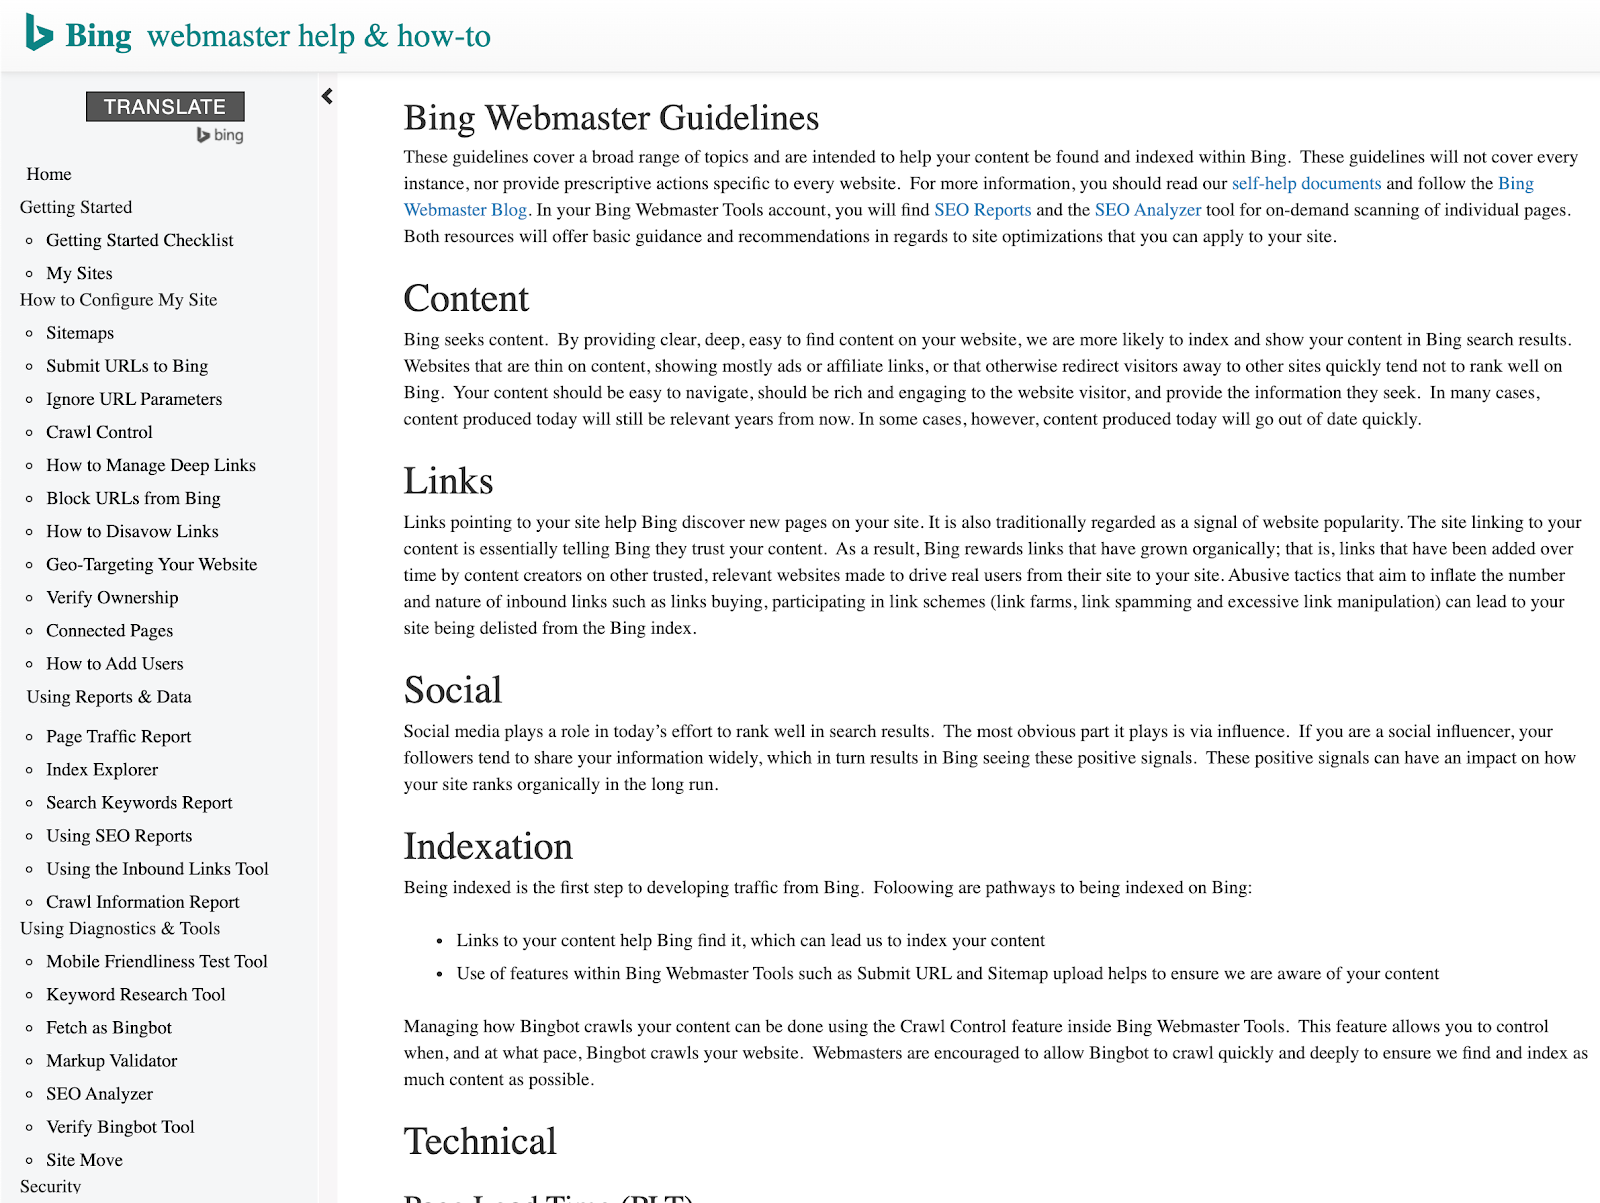 Bing Webmaster Help & How To